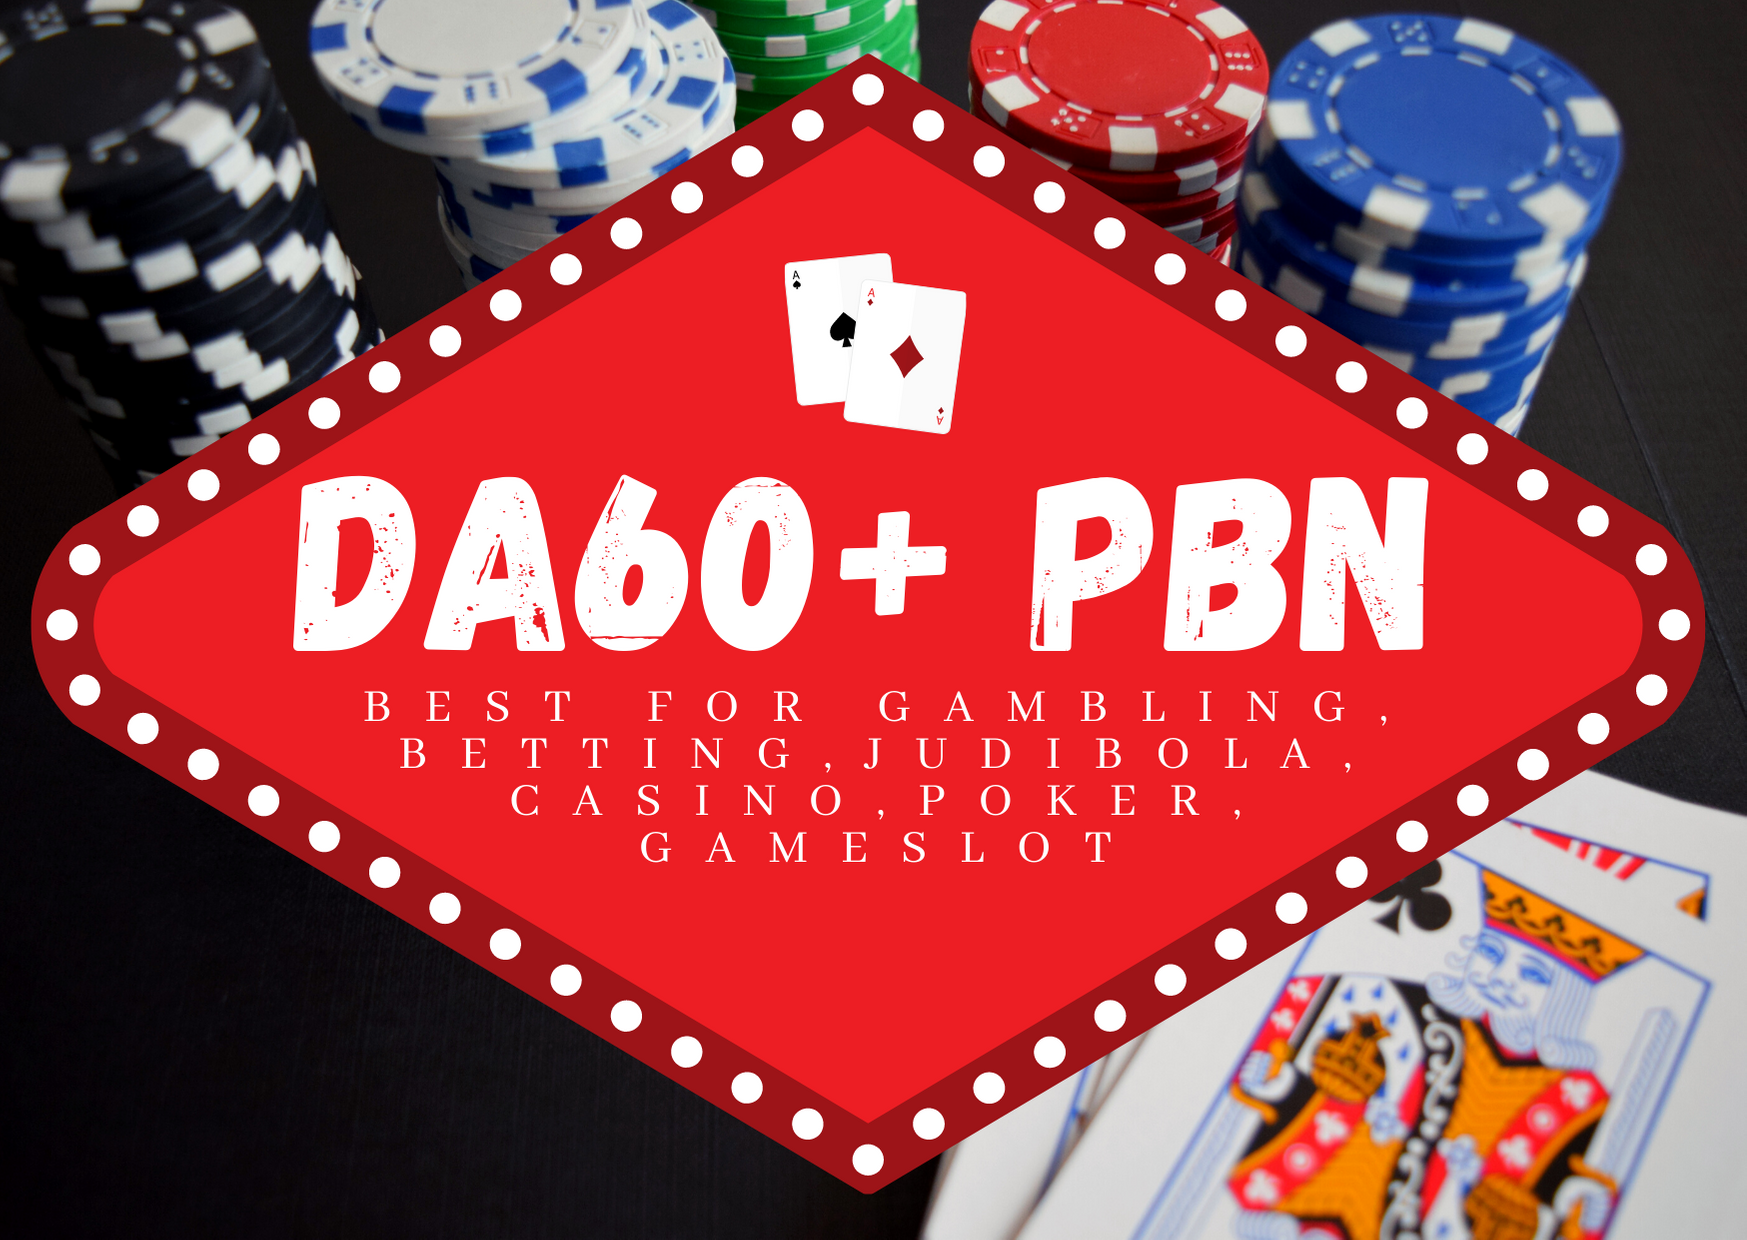 15 DA60+ PBN Backlinks For Gambling,  Betting,  Judi Bola,  Casino,  Poker,  Gameslot